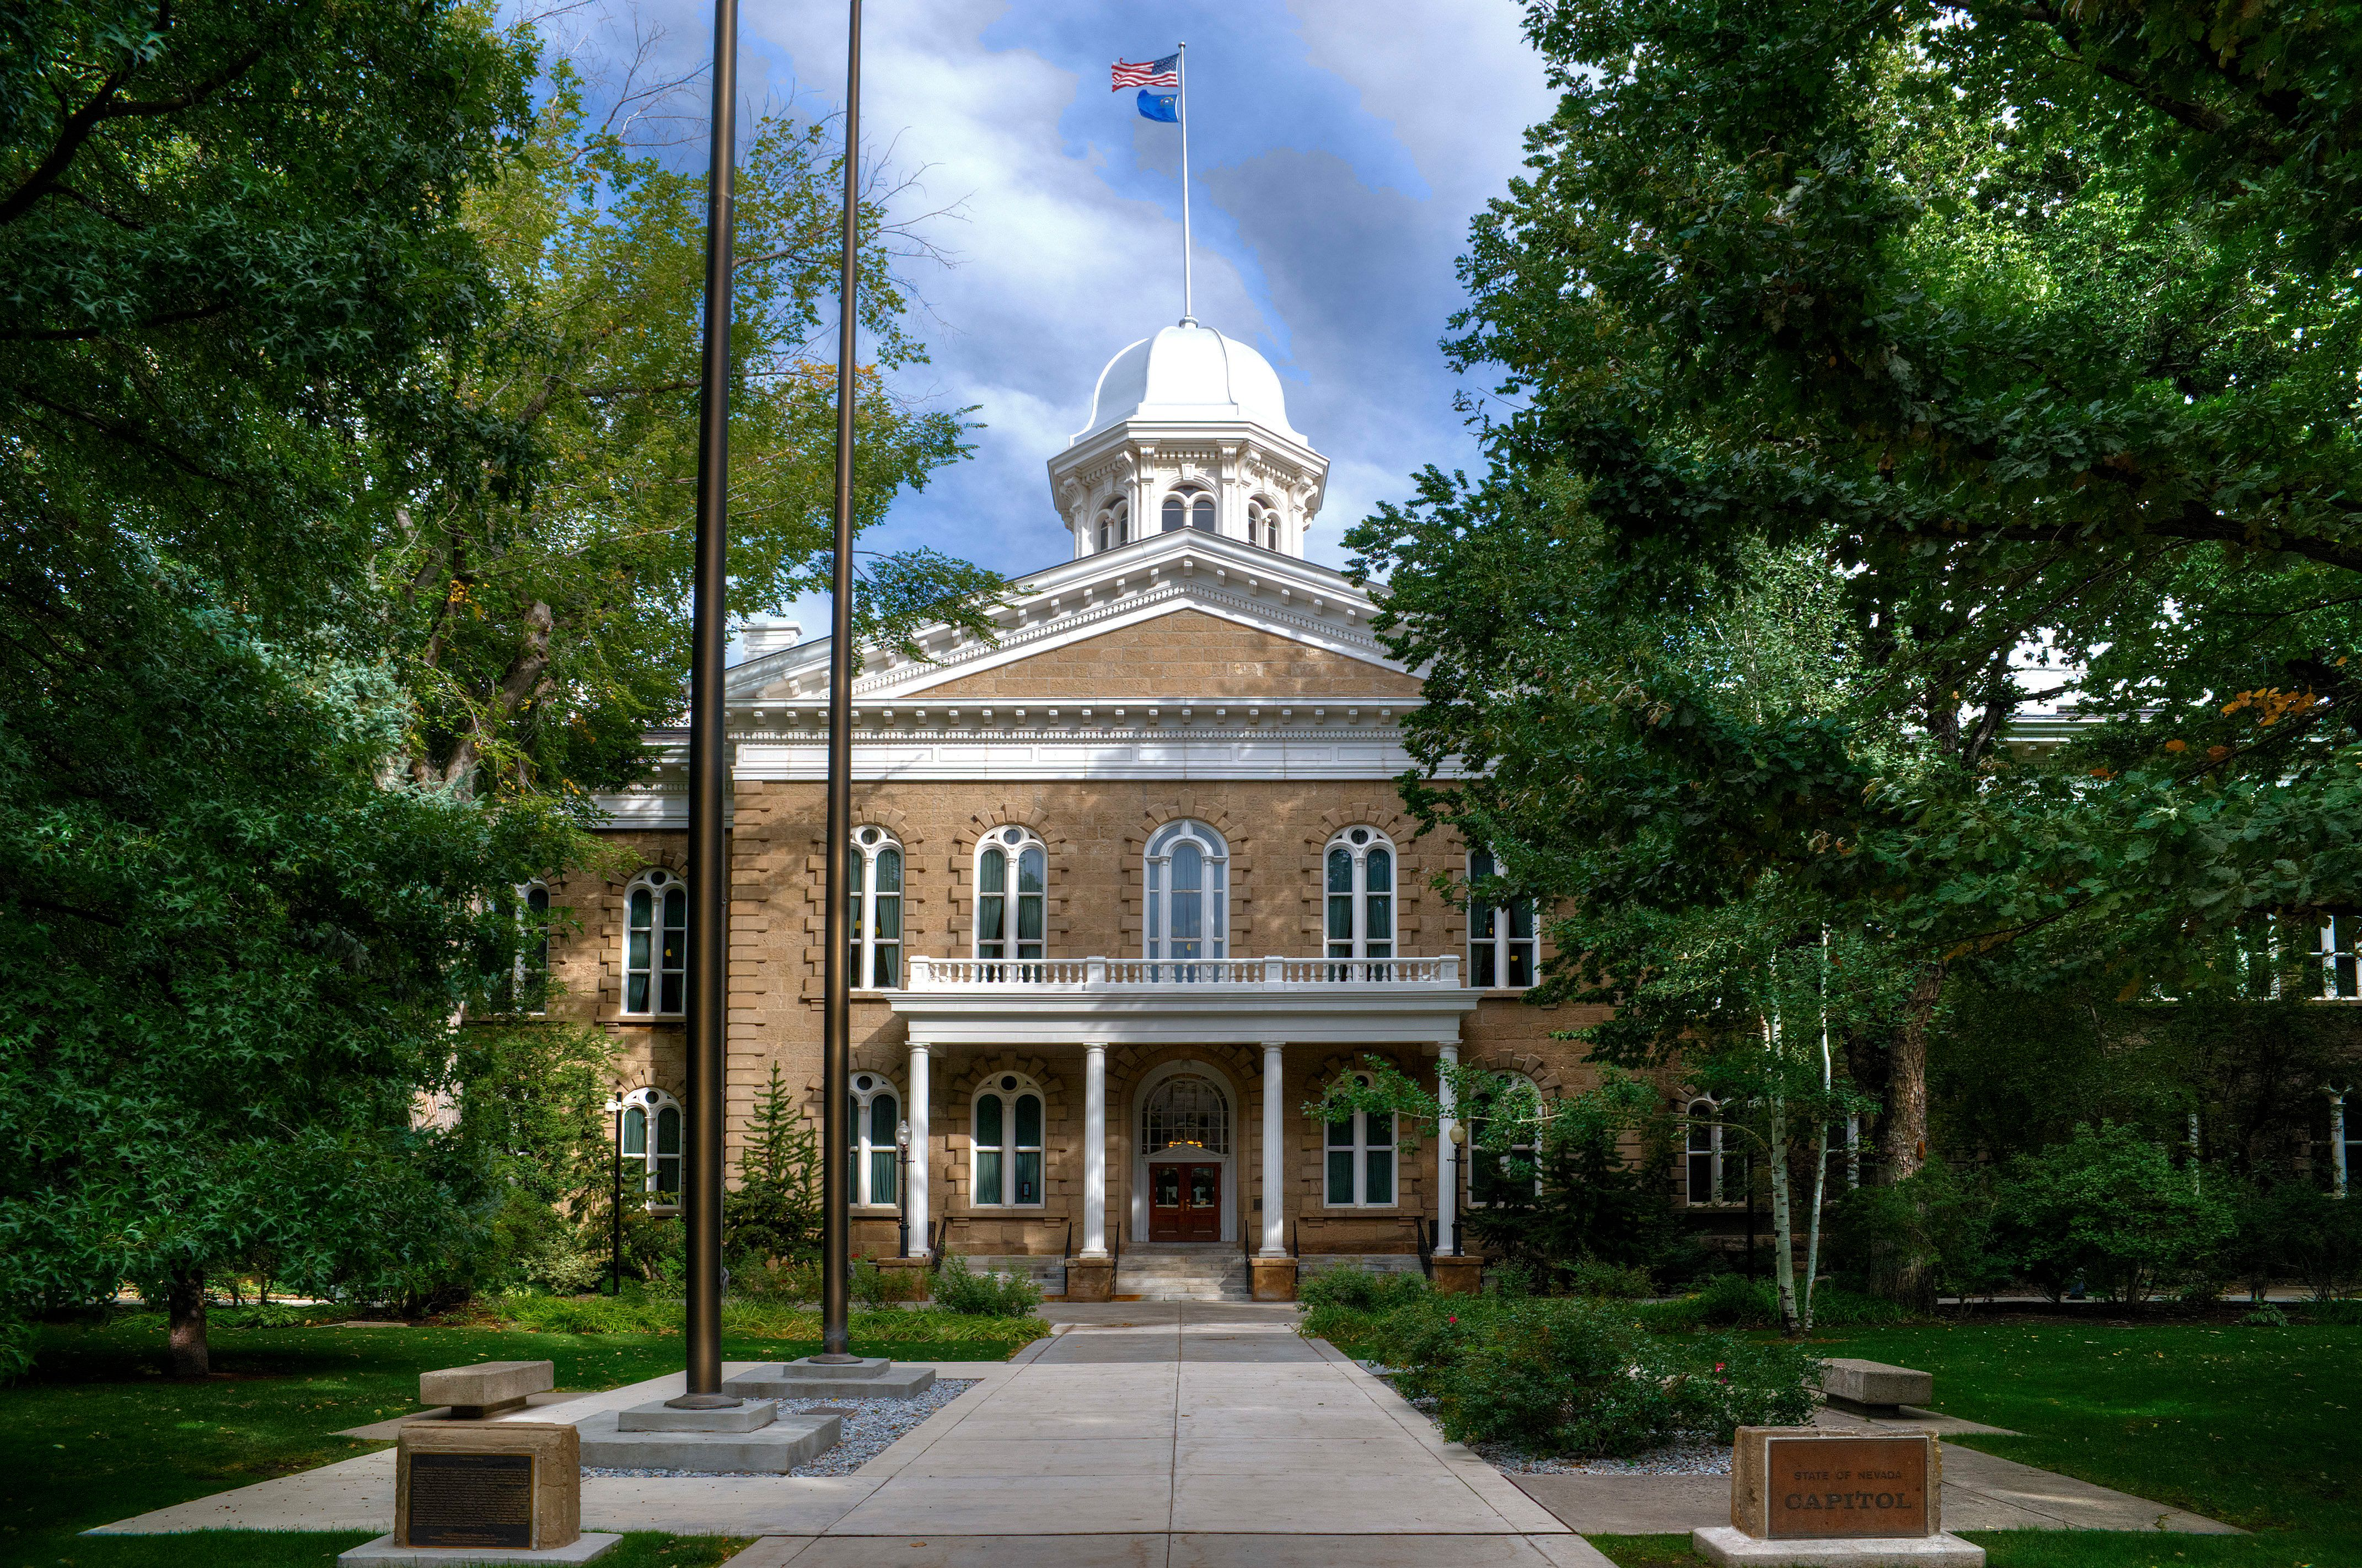 The Nevada state capitol building in Carson City.